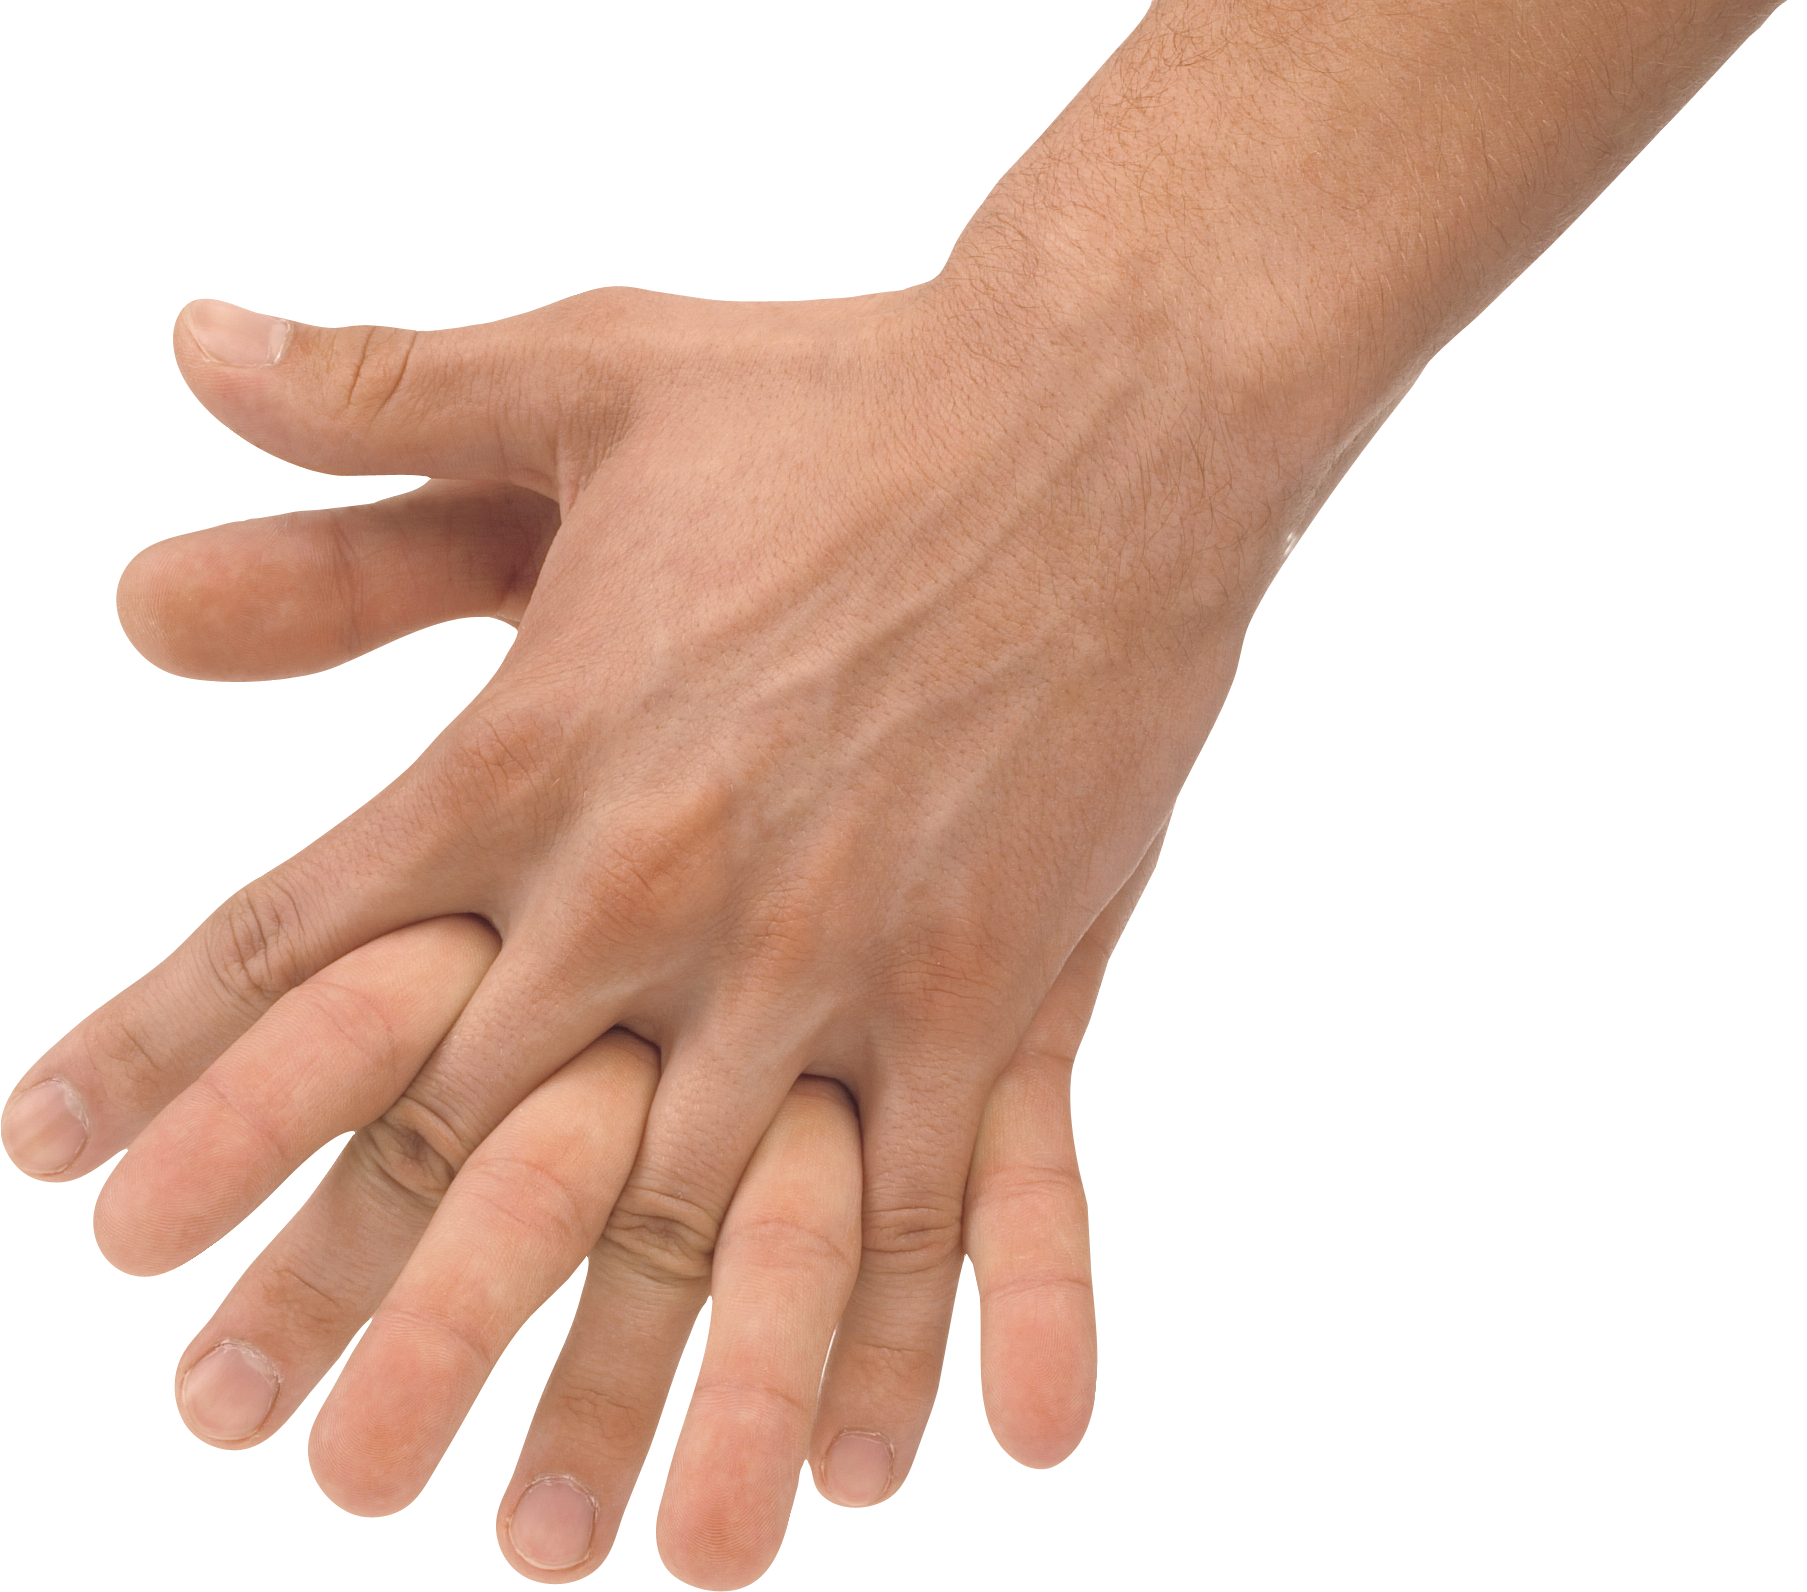 Hands png image purepng. Fingers clipart six finger